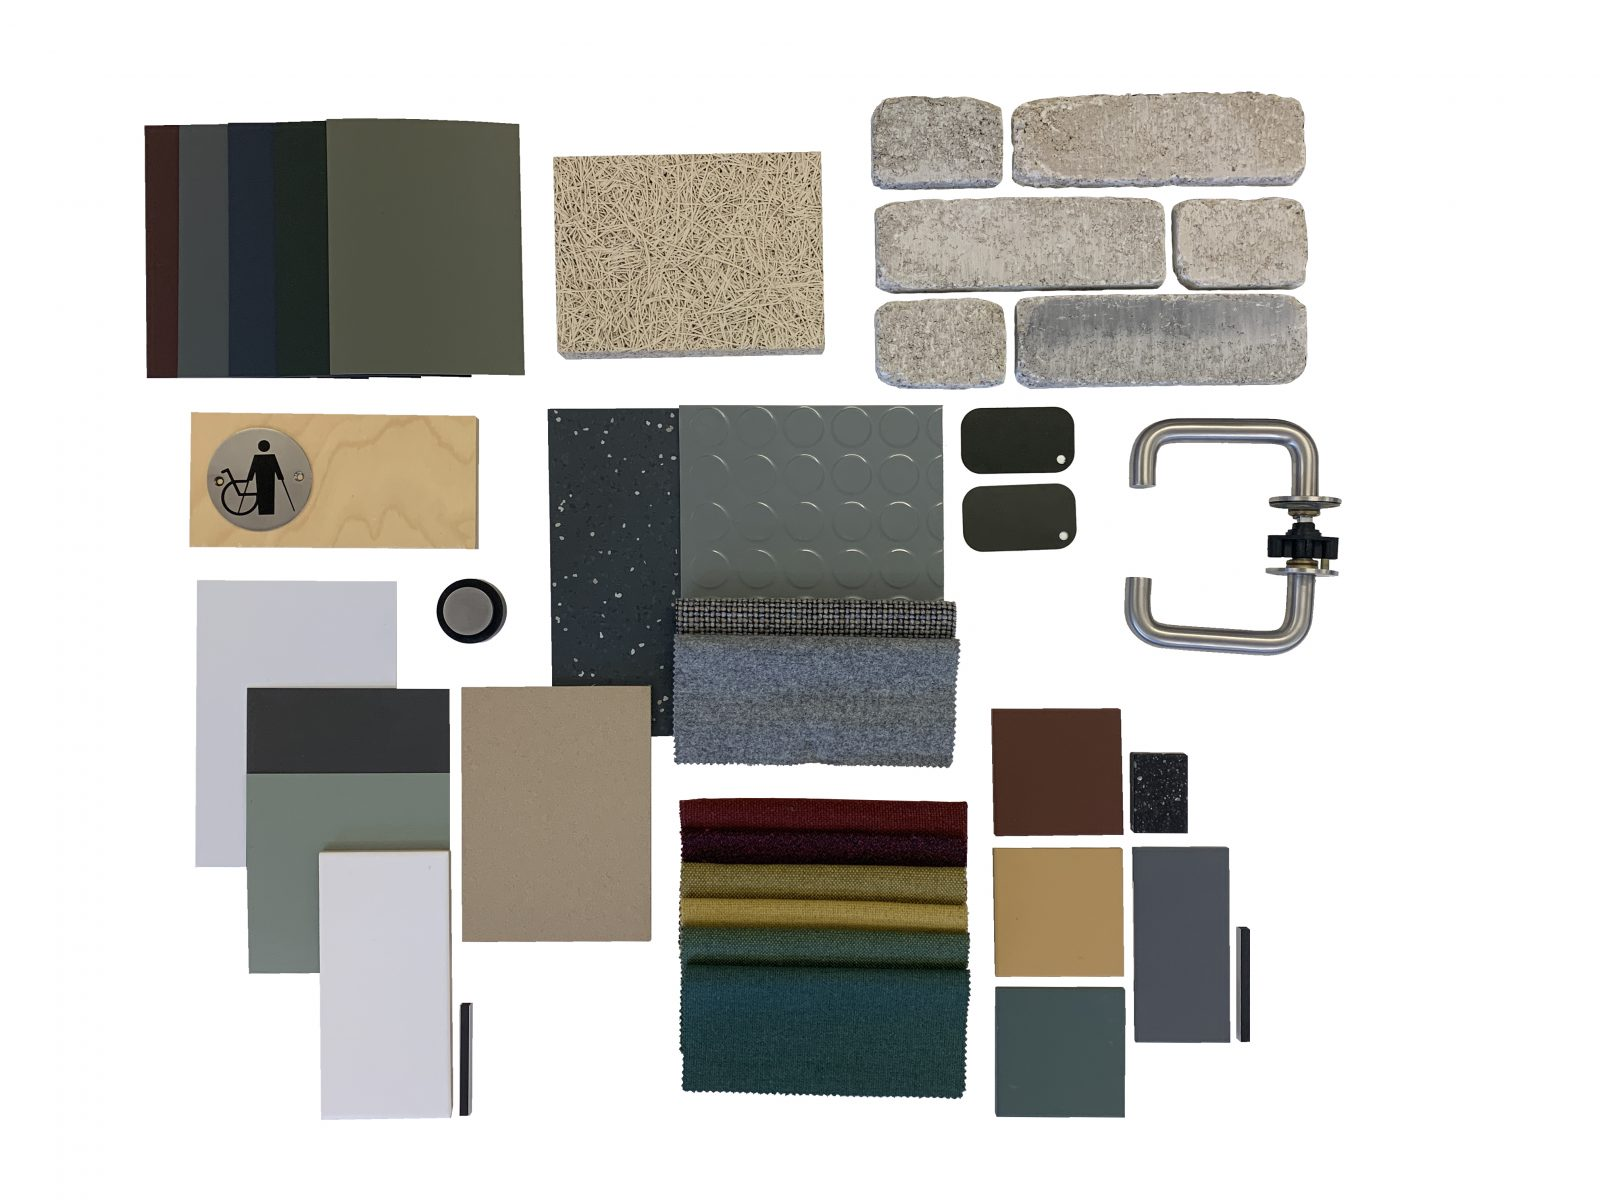 Material palette